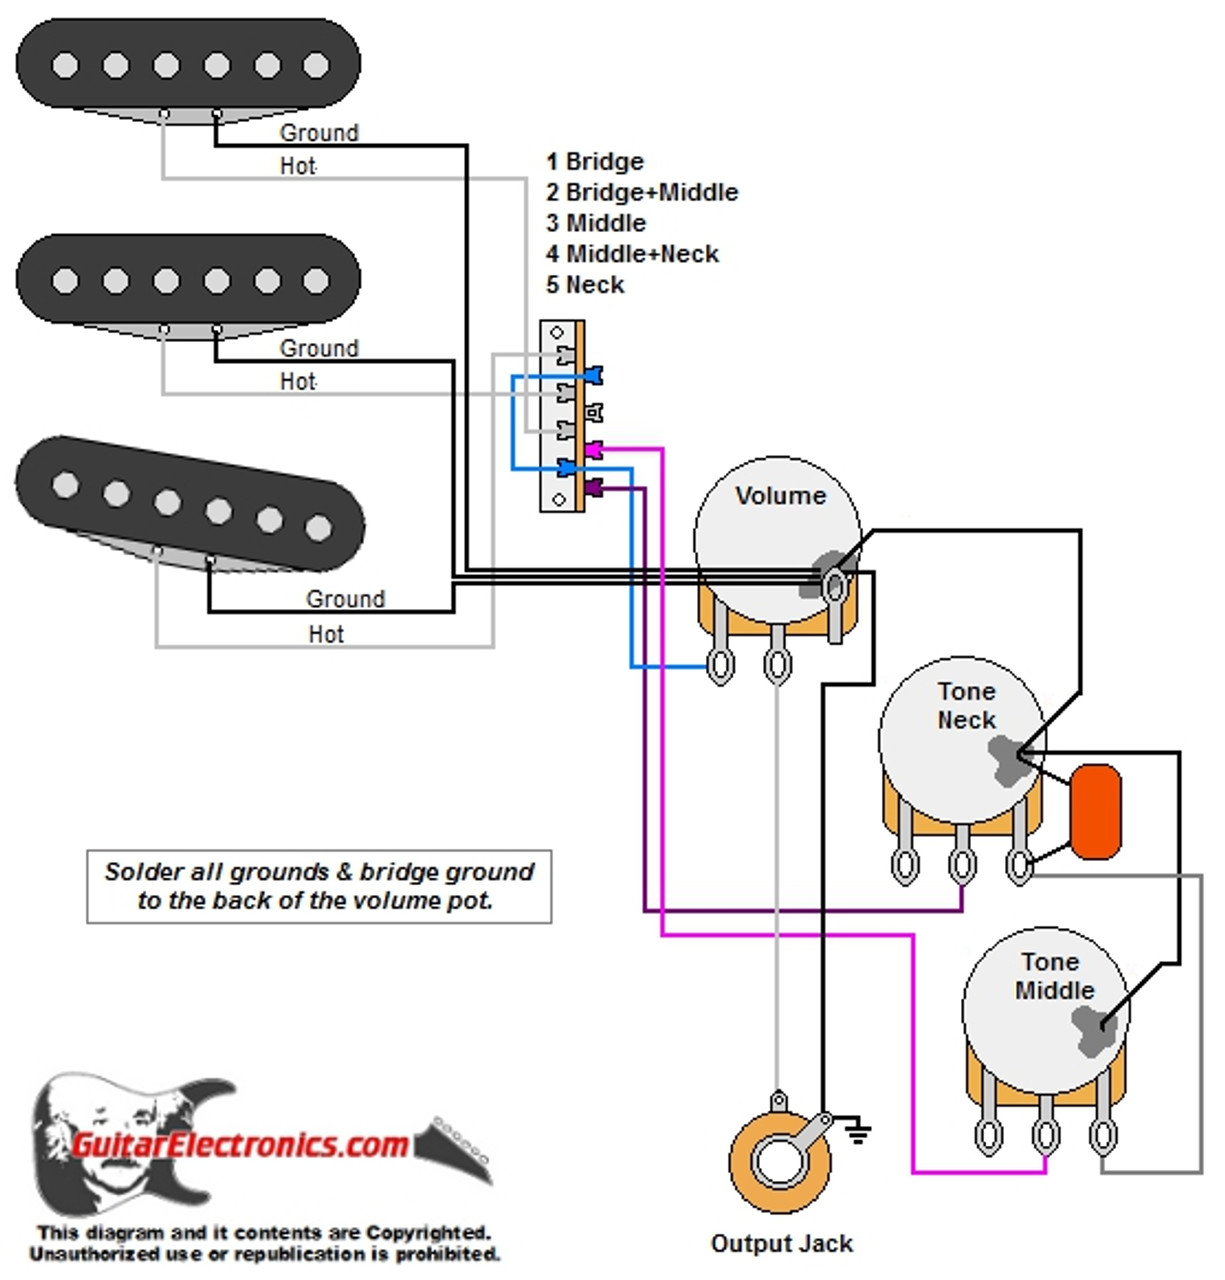 Fender Stratocaster Wiring Diagram Pdf | Wiring Diagram on